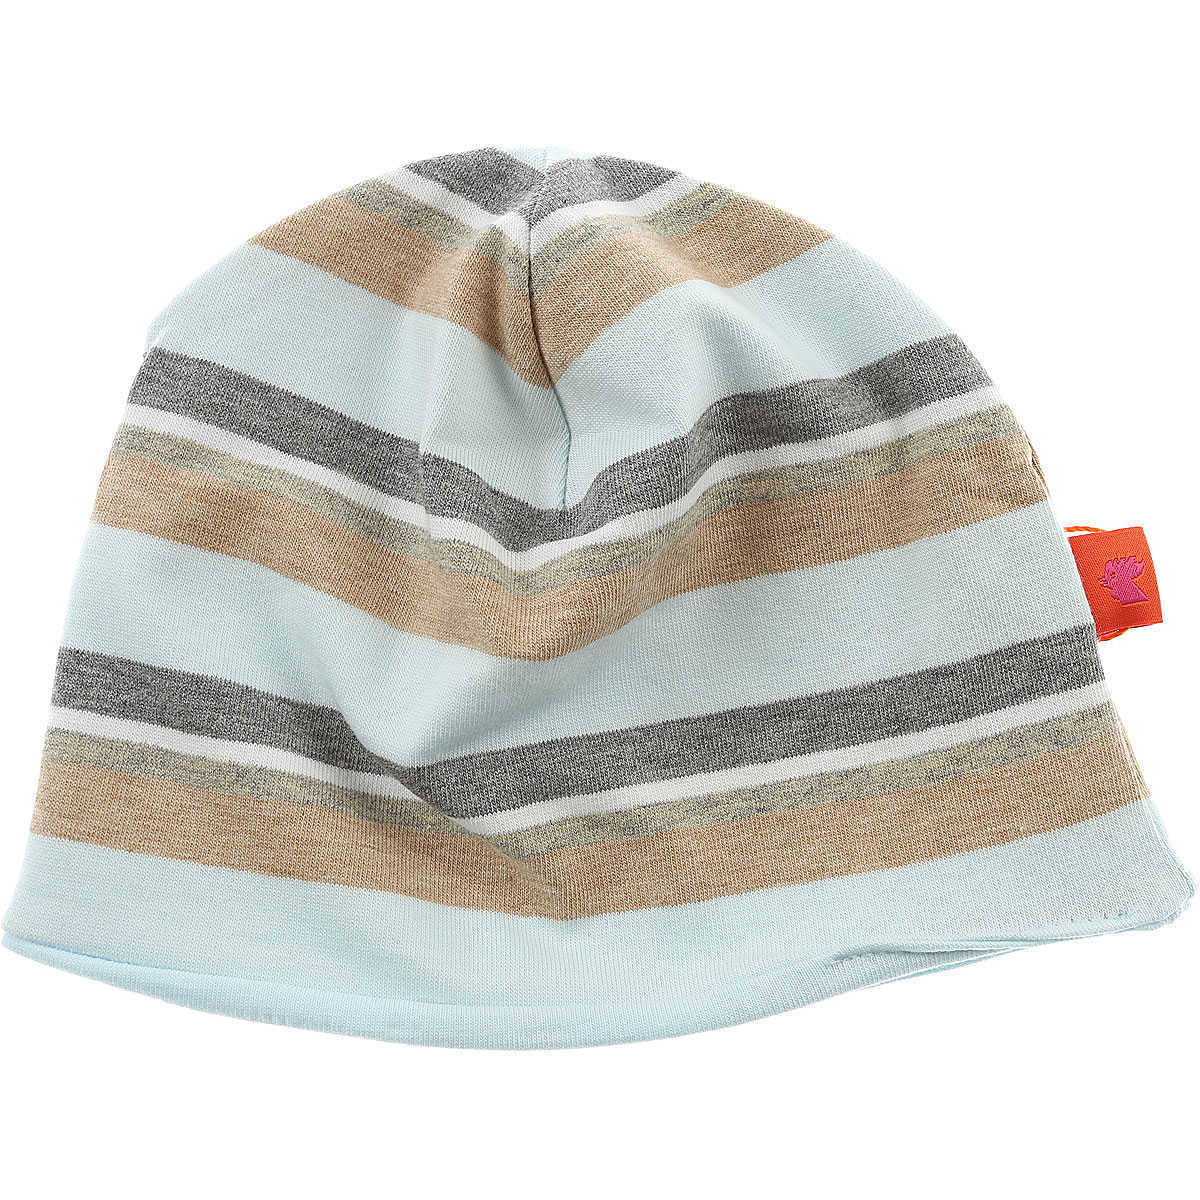 Gallo Baby Hats for Boys On Sale in Outlet Sky Blue - GOOFASH - Mens HATS